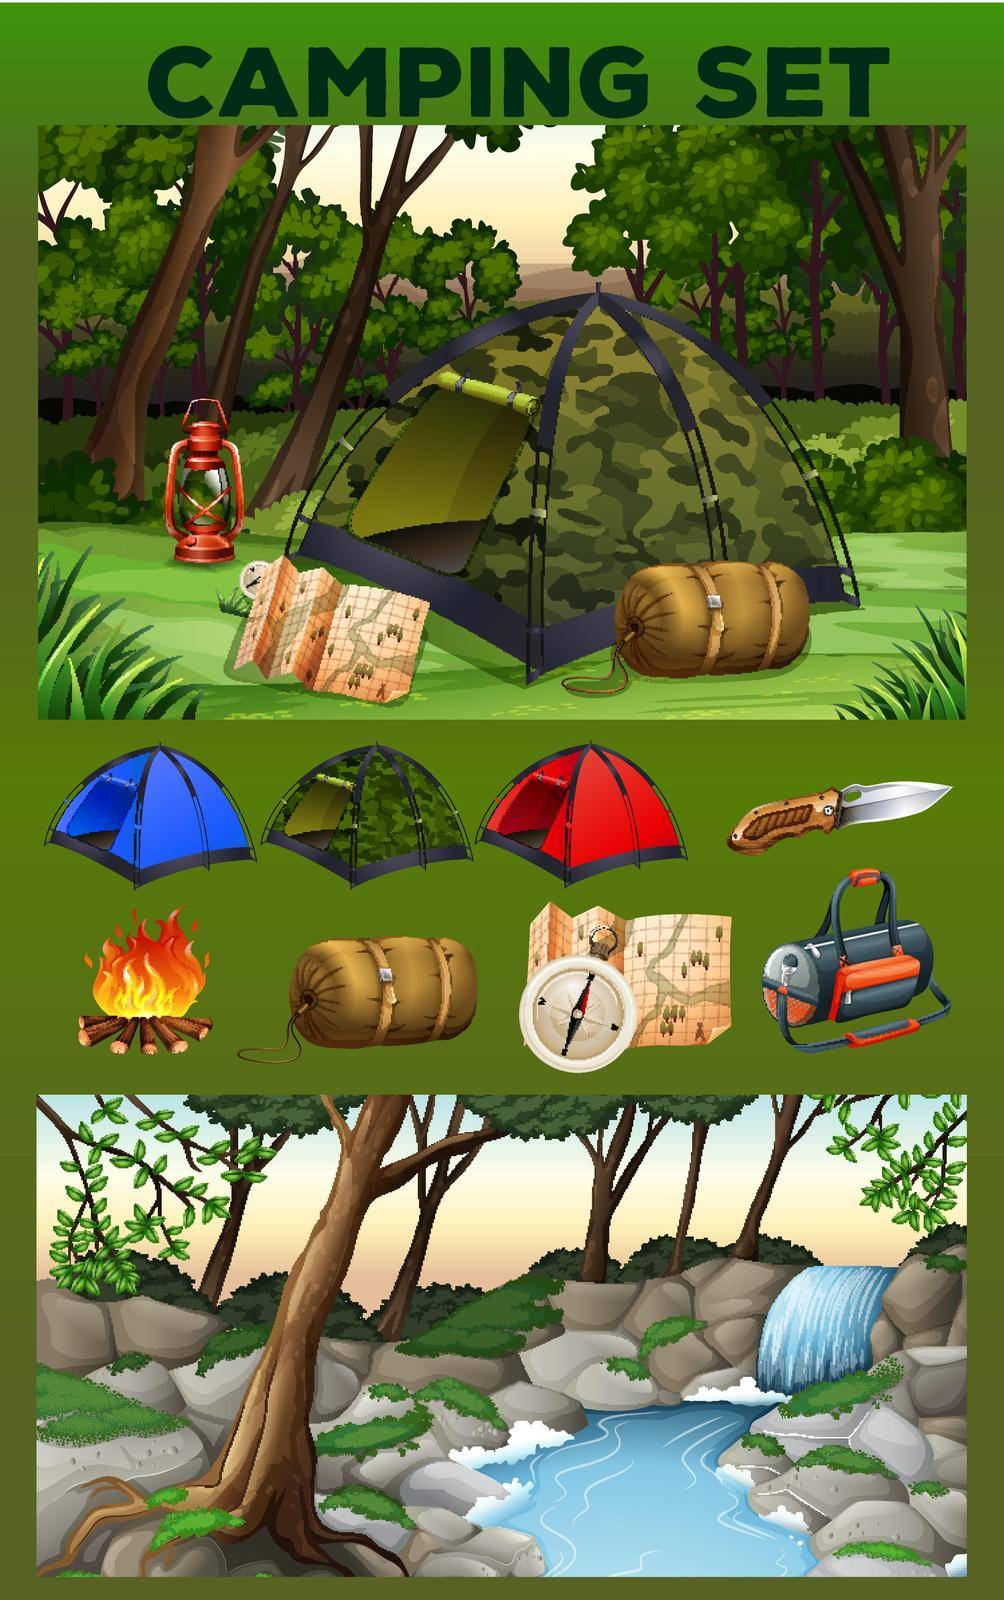 Camping equipment and field by iimages